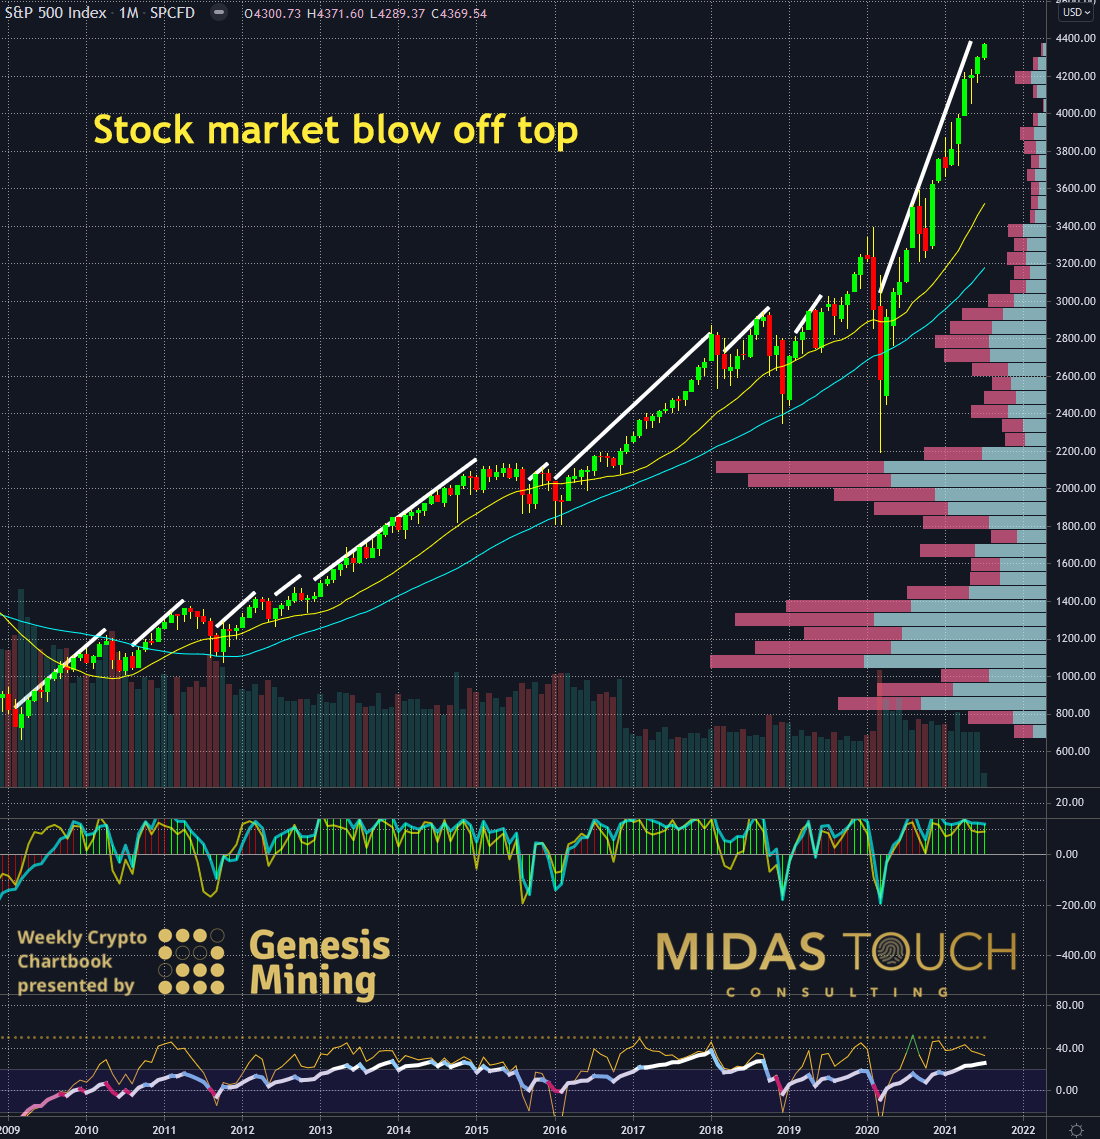 S&P 500 in US-Dollar, monthly chart as of July 11th, 2021.